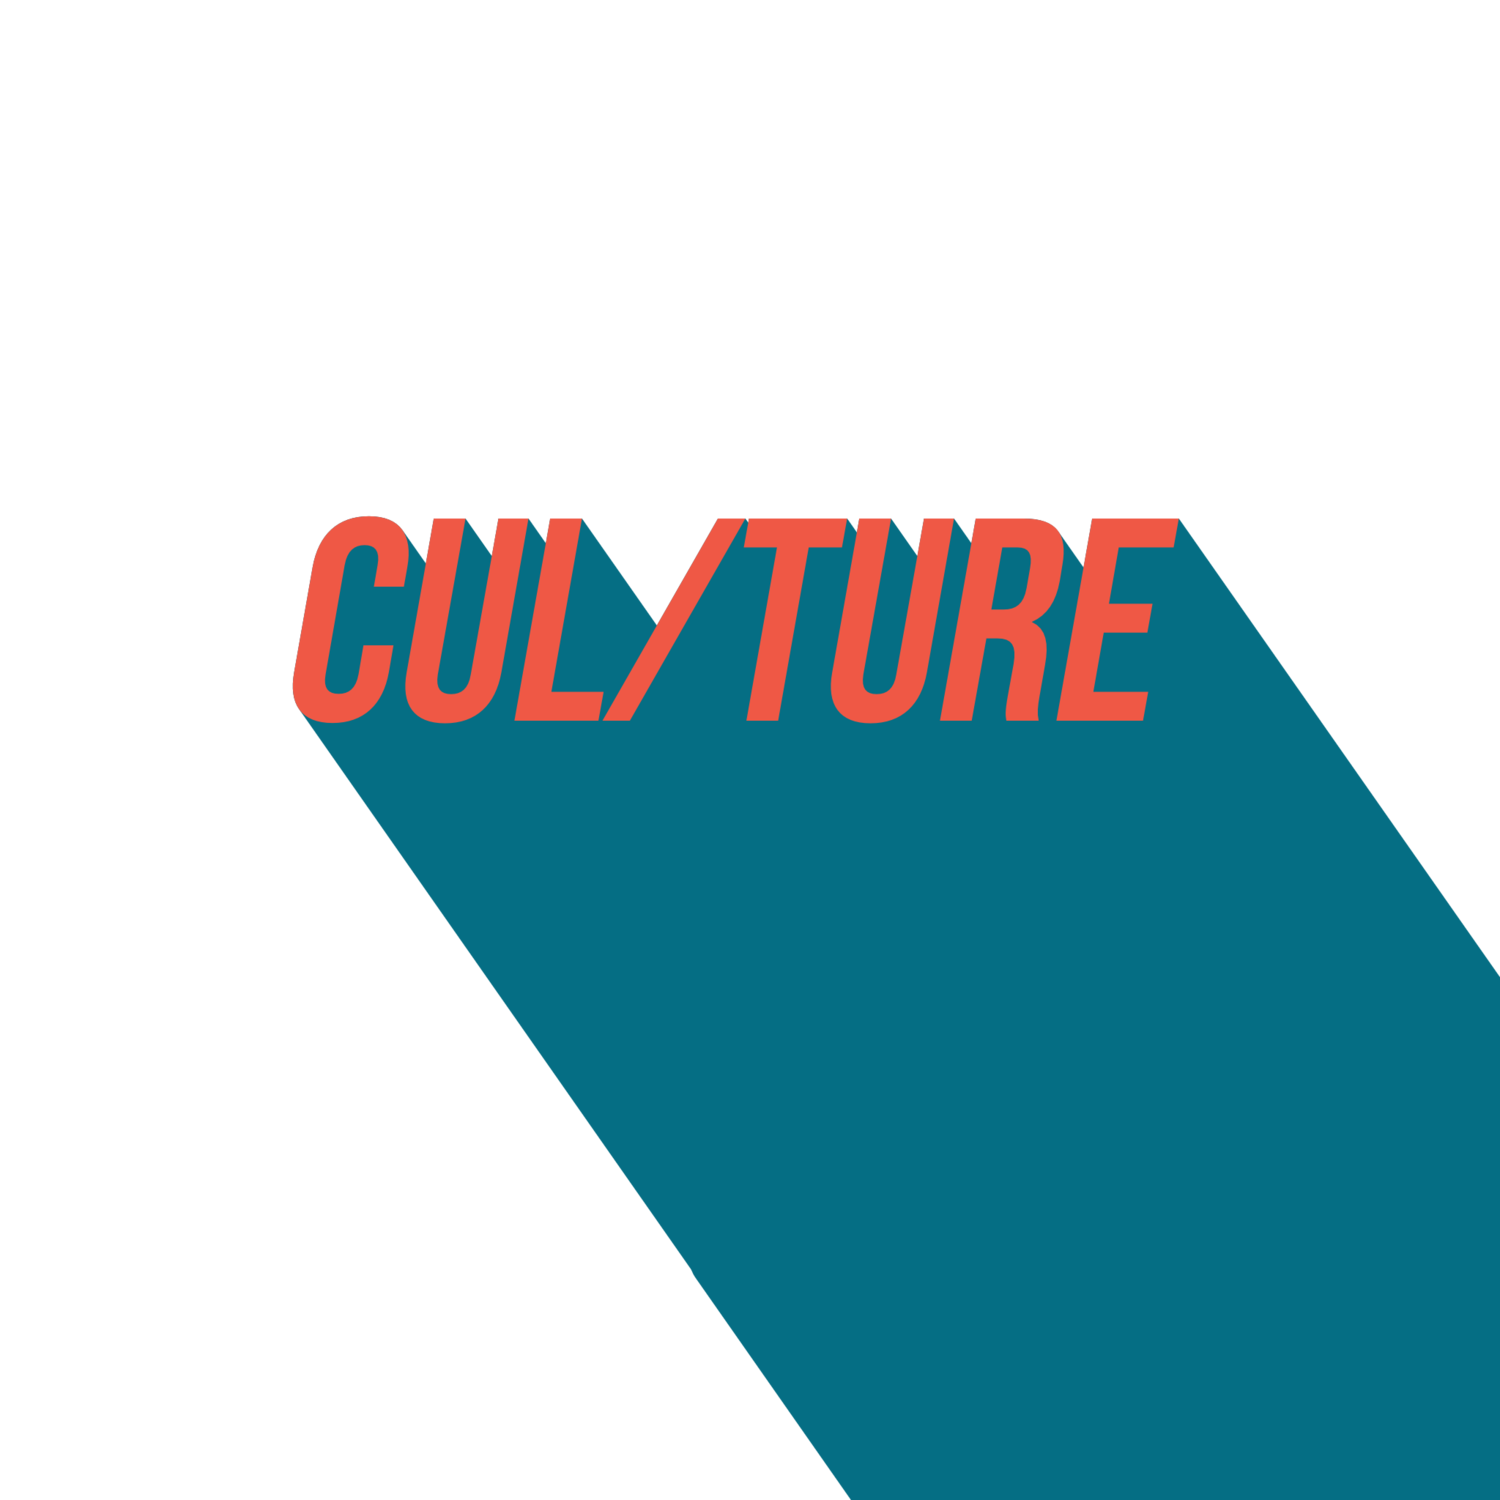 CUL/TURE Marketing Group